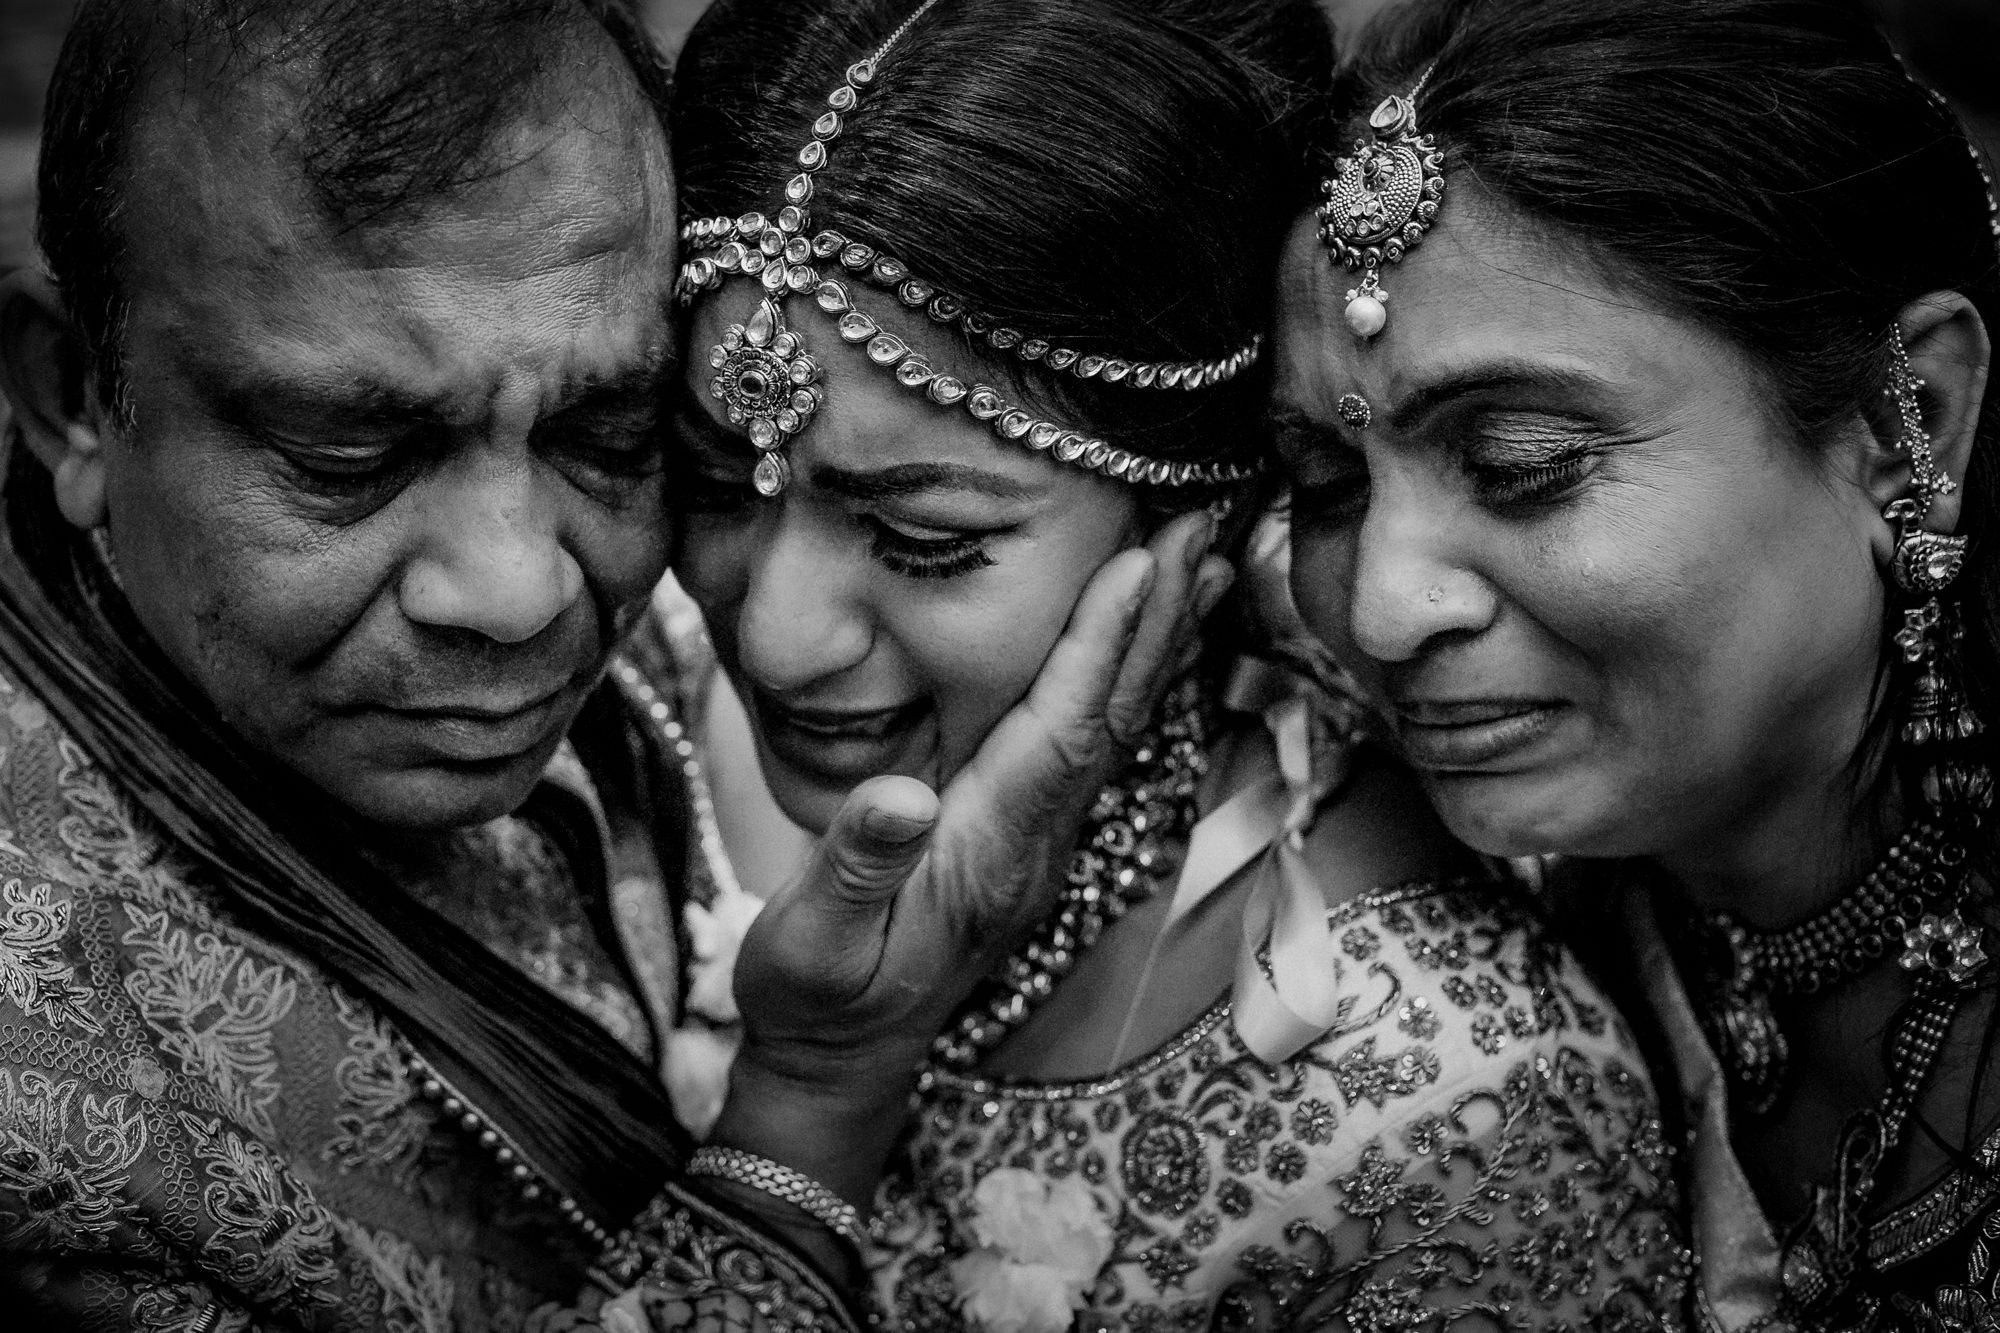 Indian bride embracing mom and dad in emotional moment by Matei Horvath of Los Angeles